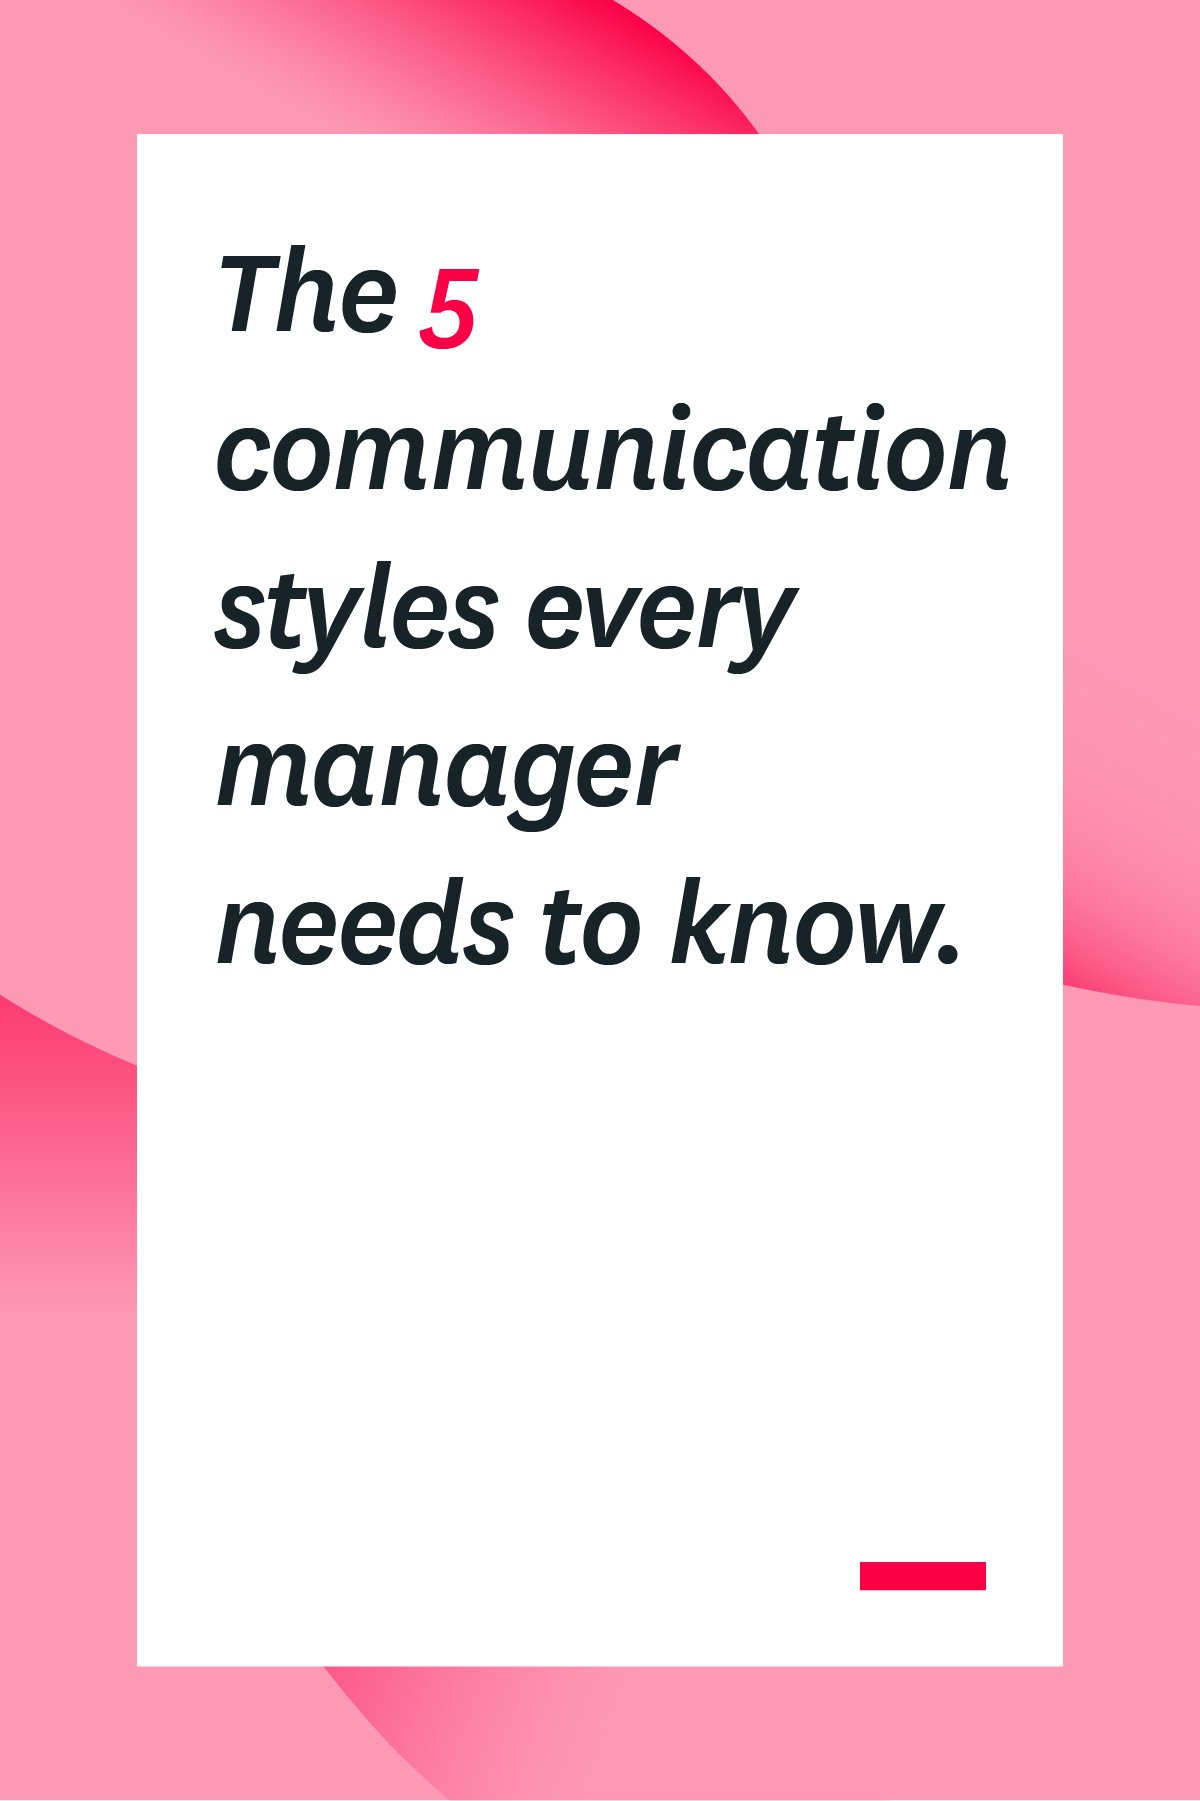 As a manger, you need to understand different communication styles if you want your team to be successful. This overview of the 5 communication styles your employee's may be using will help you communicate better and ultimately get more done. #workplace #communication #managertips